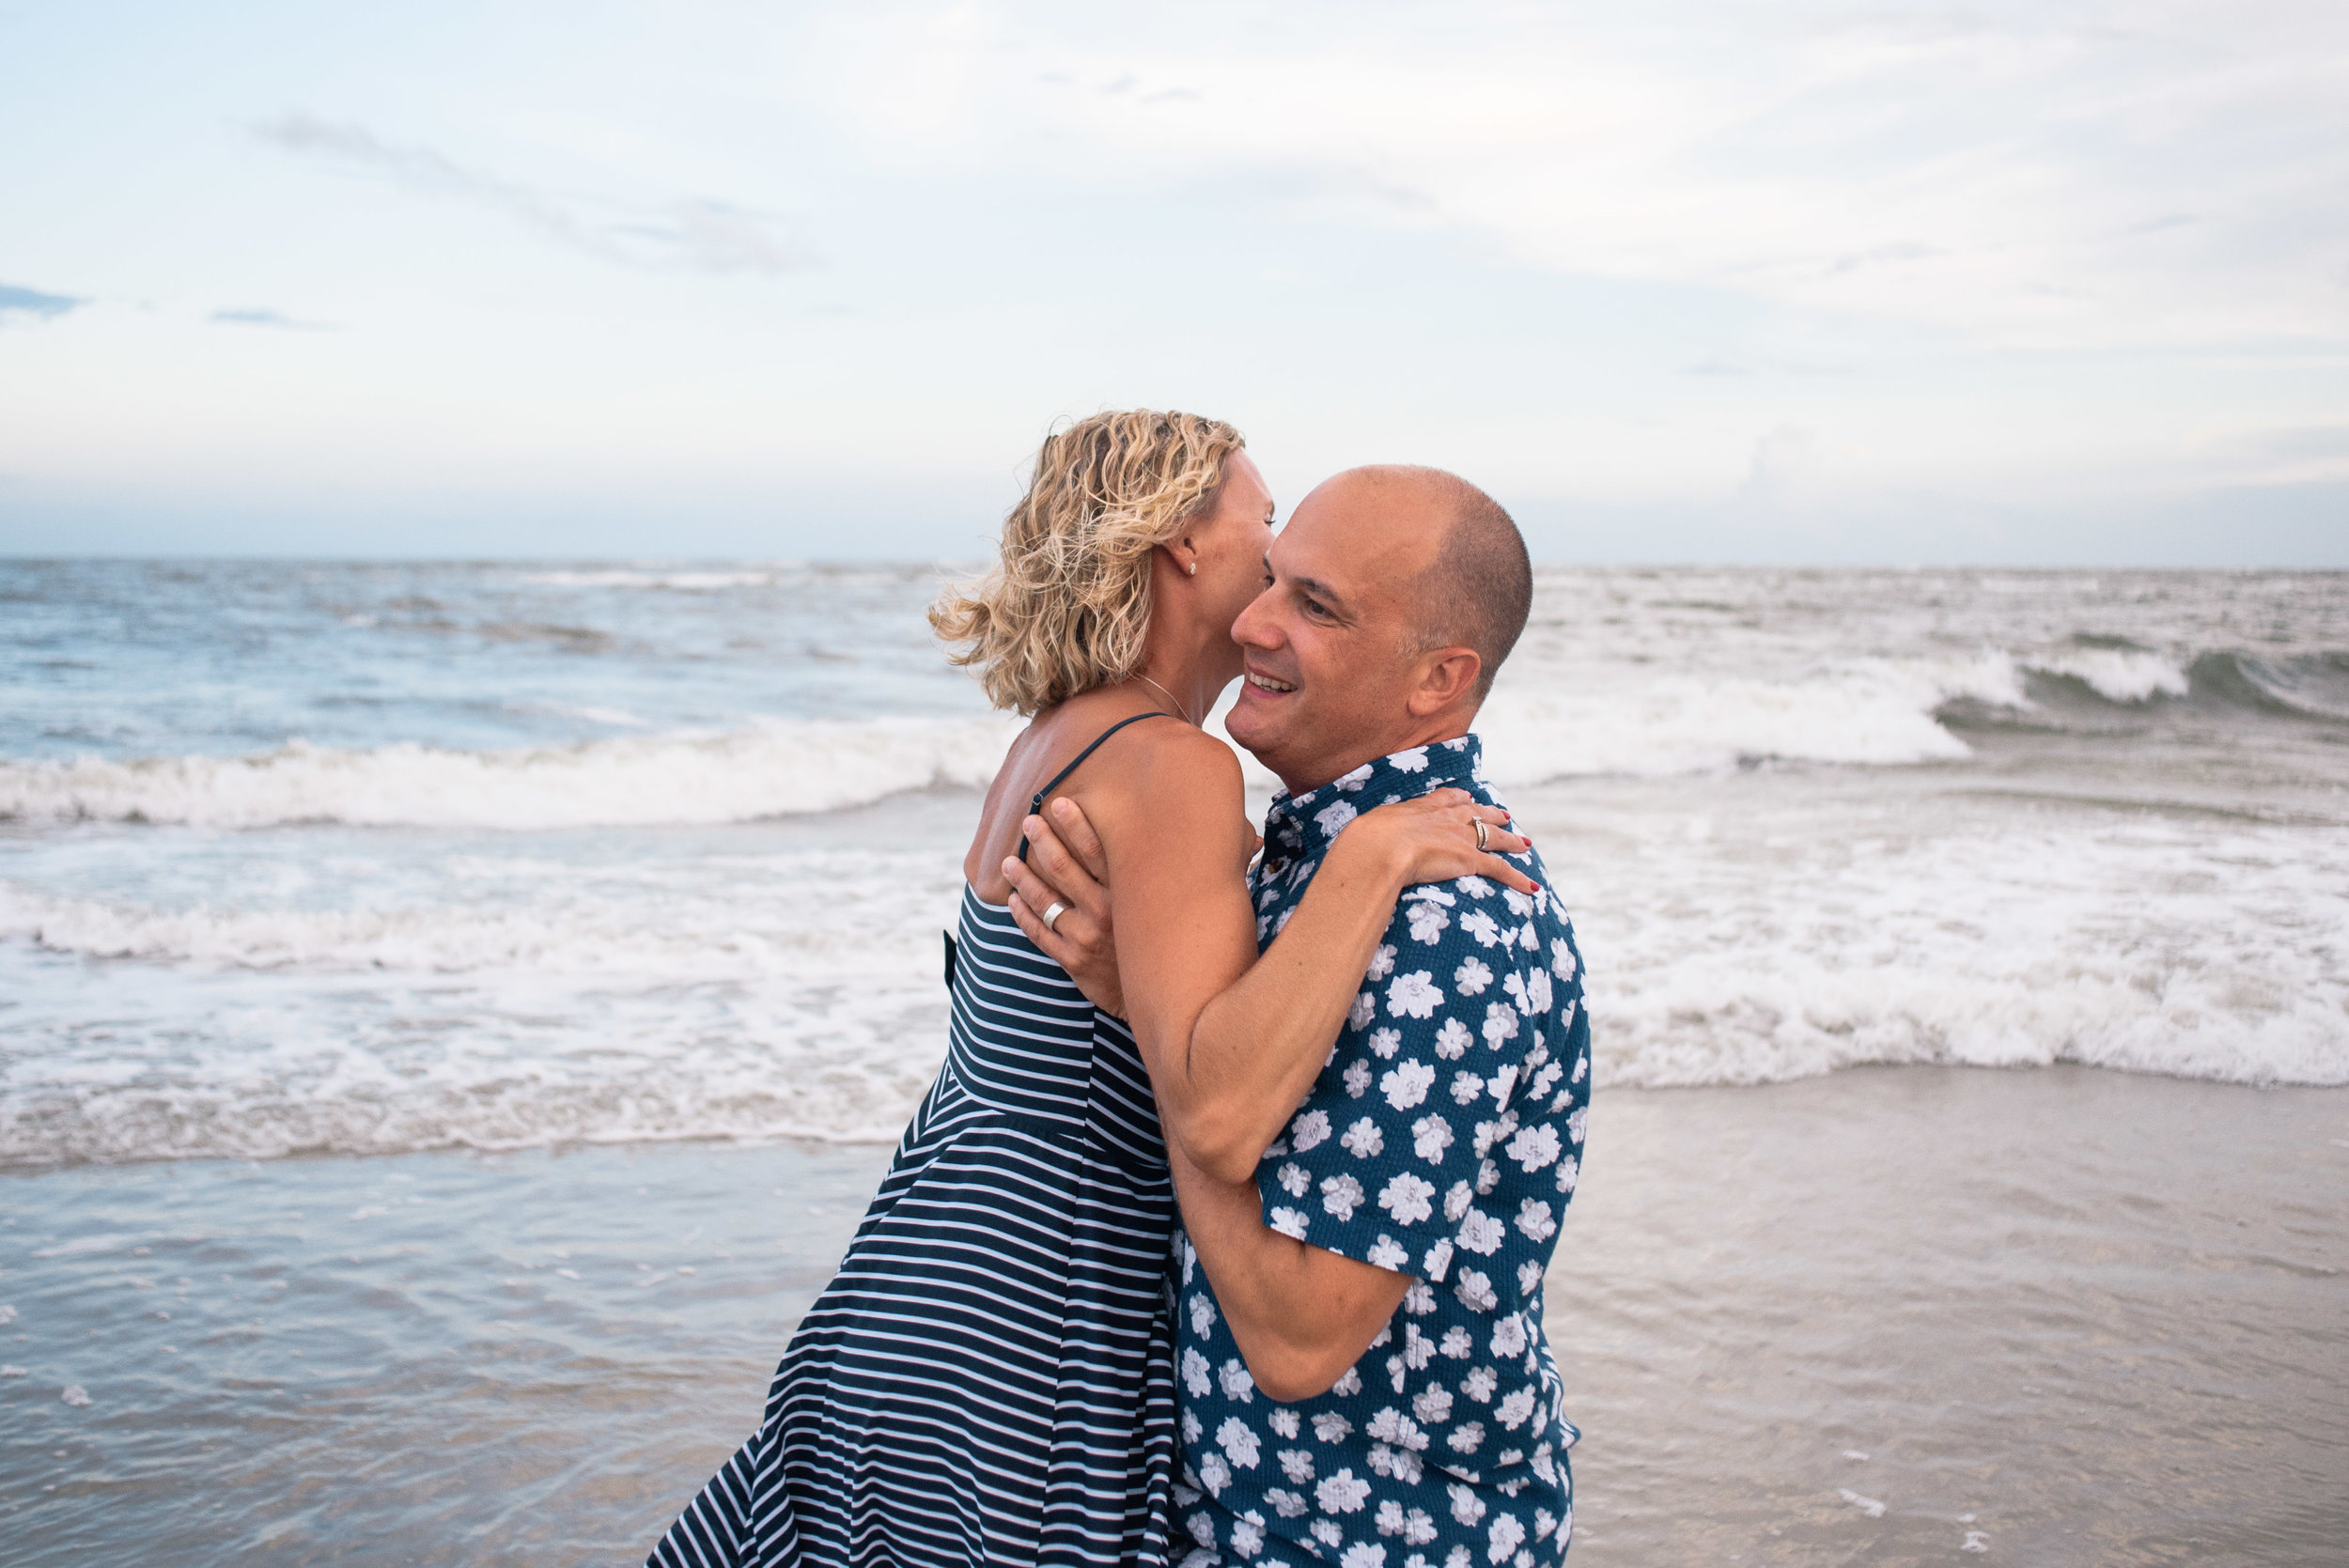 Bill-and-ashley-elope-to-savannah-tybee-island-elopement (155 of 182).jpg